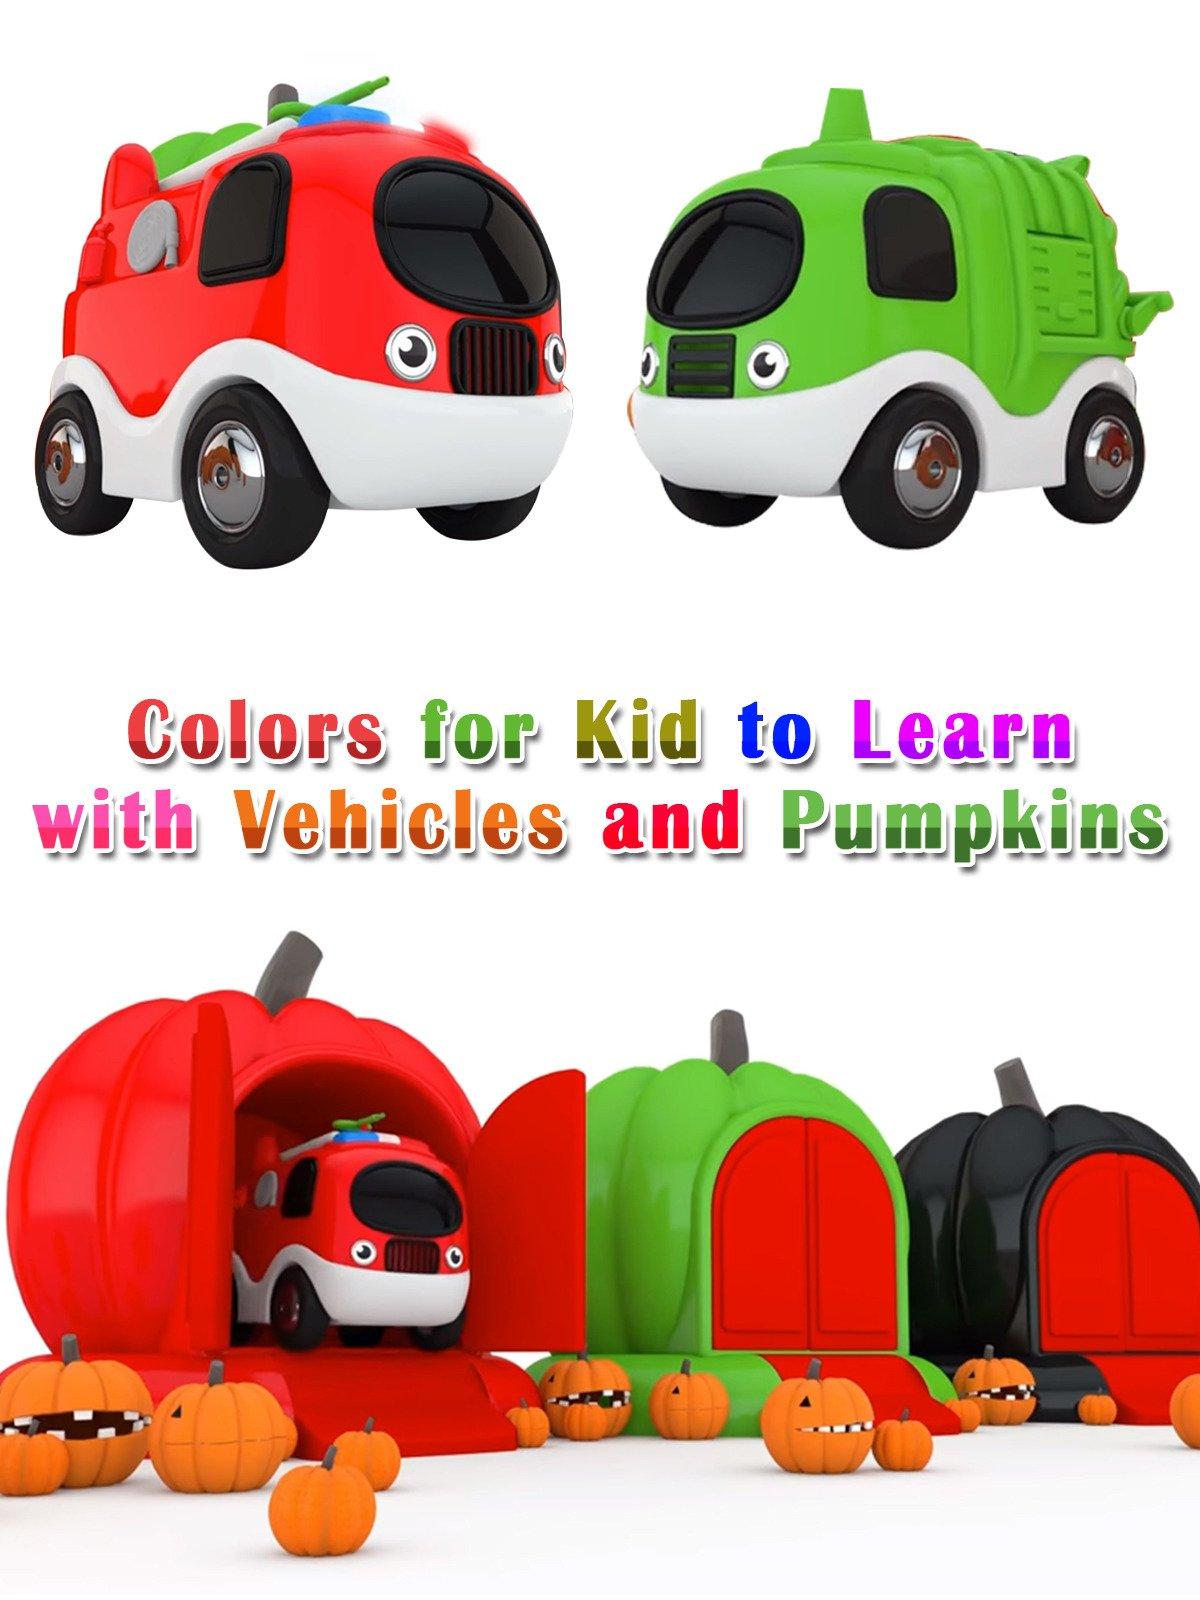 Colors for Kid to Learn with Vehicles and Pumpkins